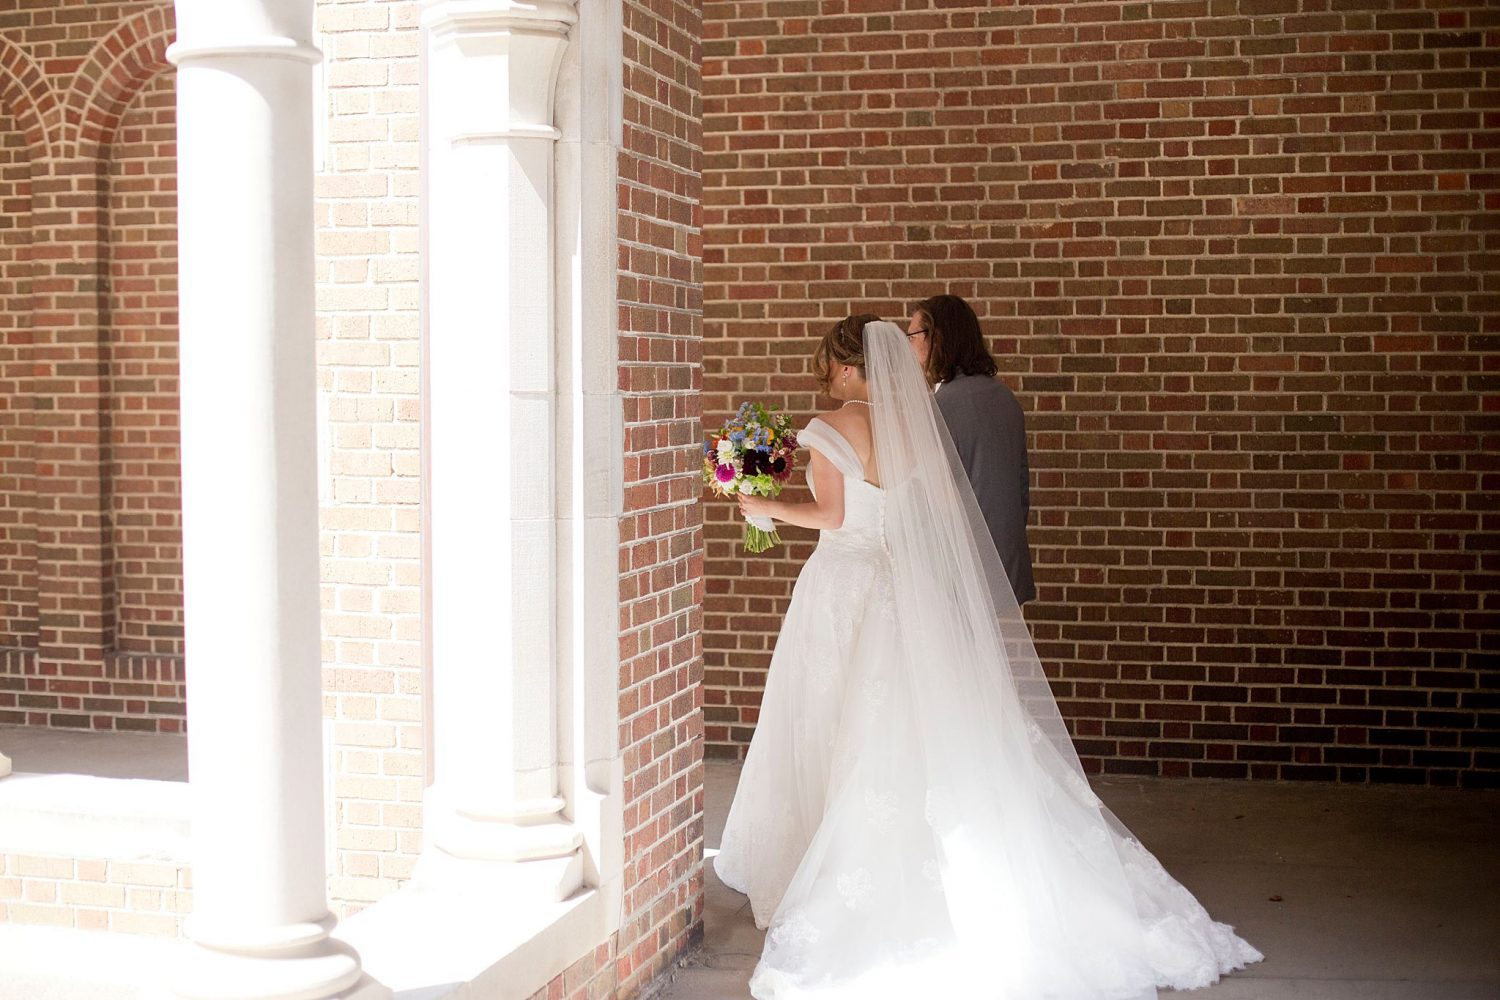 A bride and groom pose for portraits in the courtyard of St Ambrose Cathedral in Des Moines.